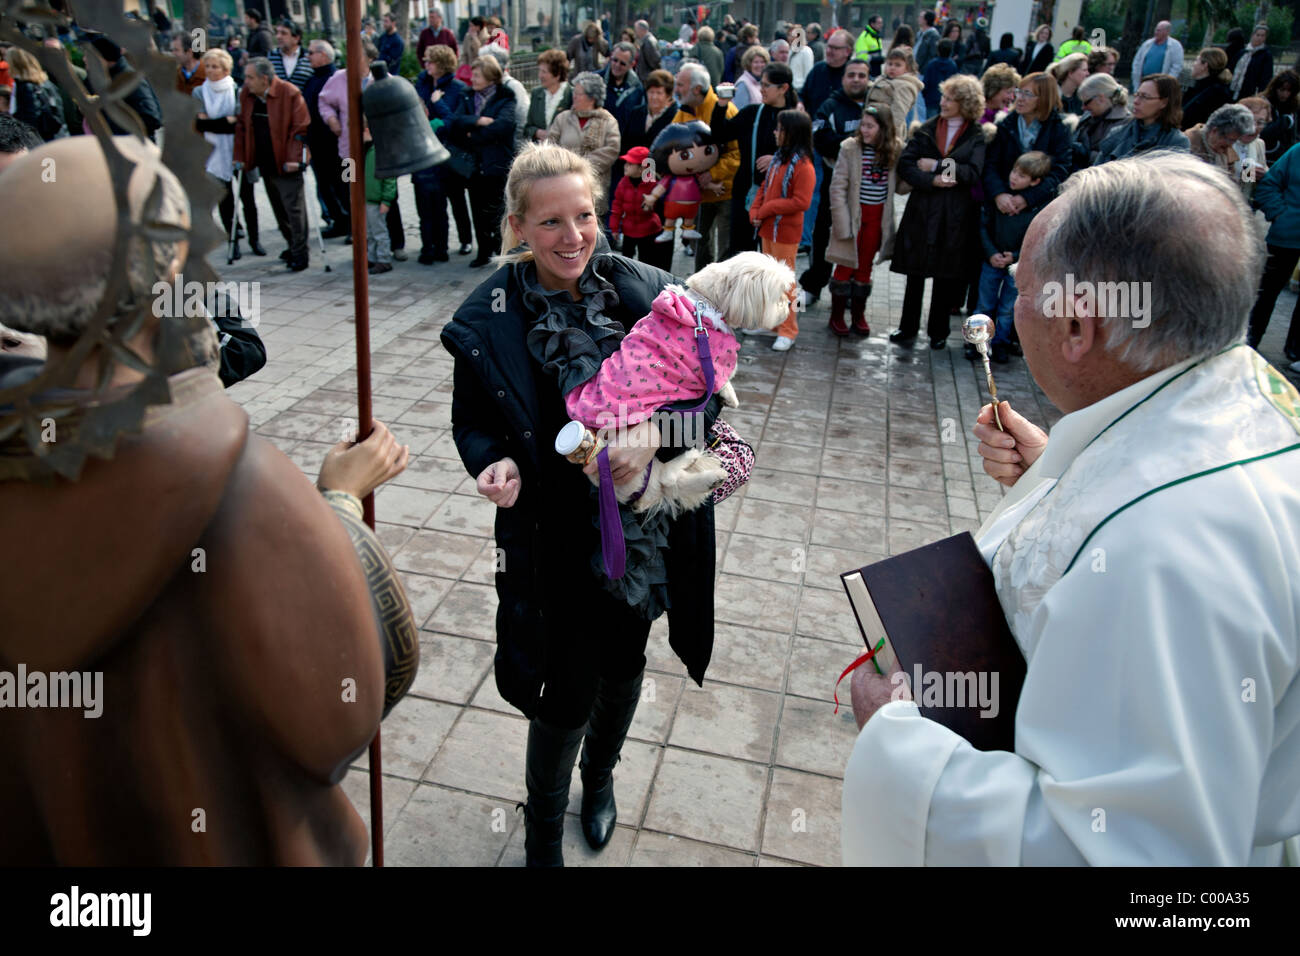 pet owners waiting  for their pest to be blessed in puerto pollensa in spain - Stock Image